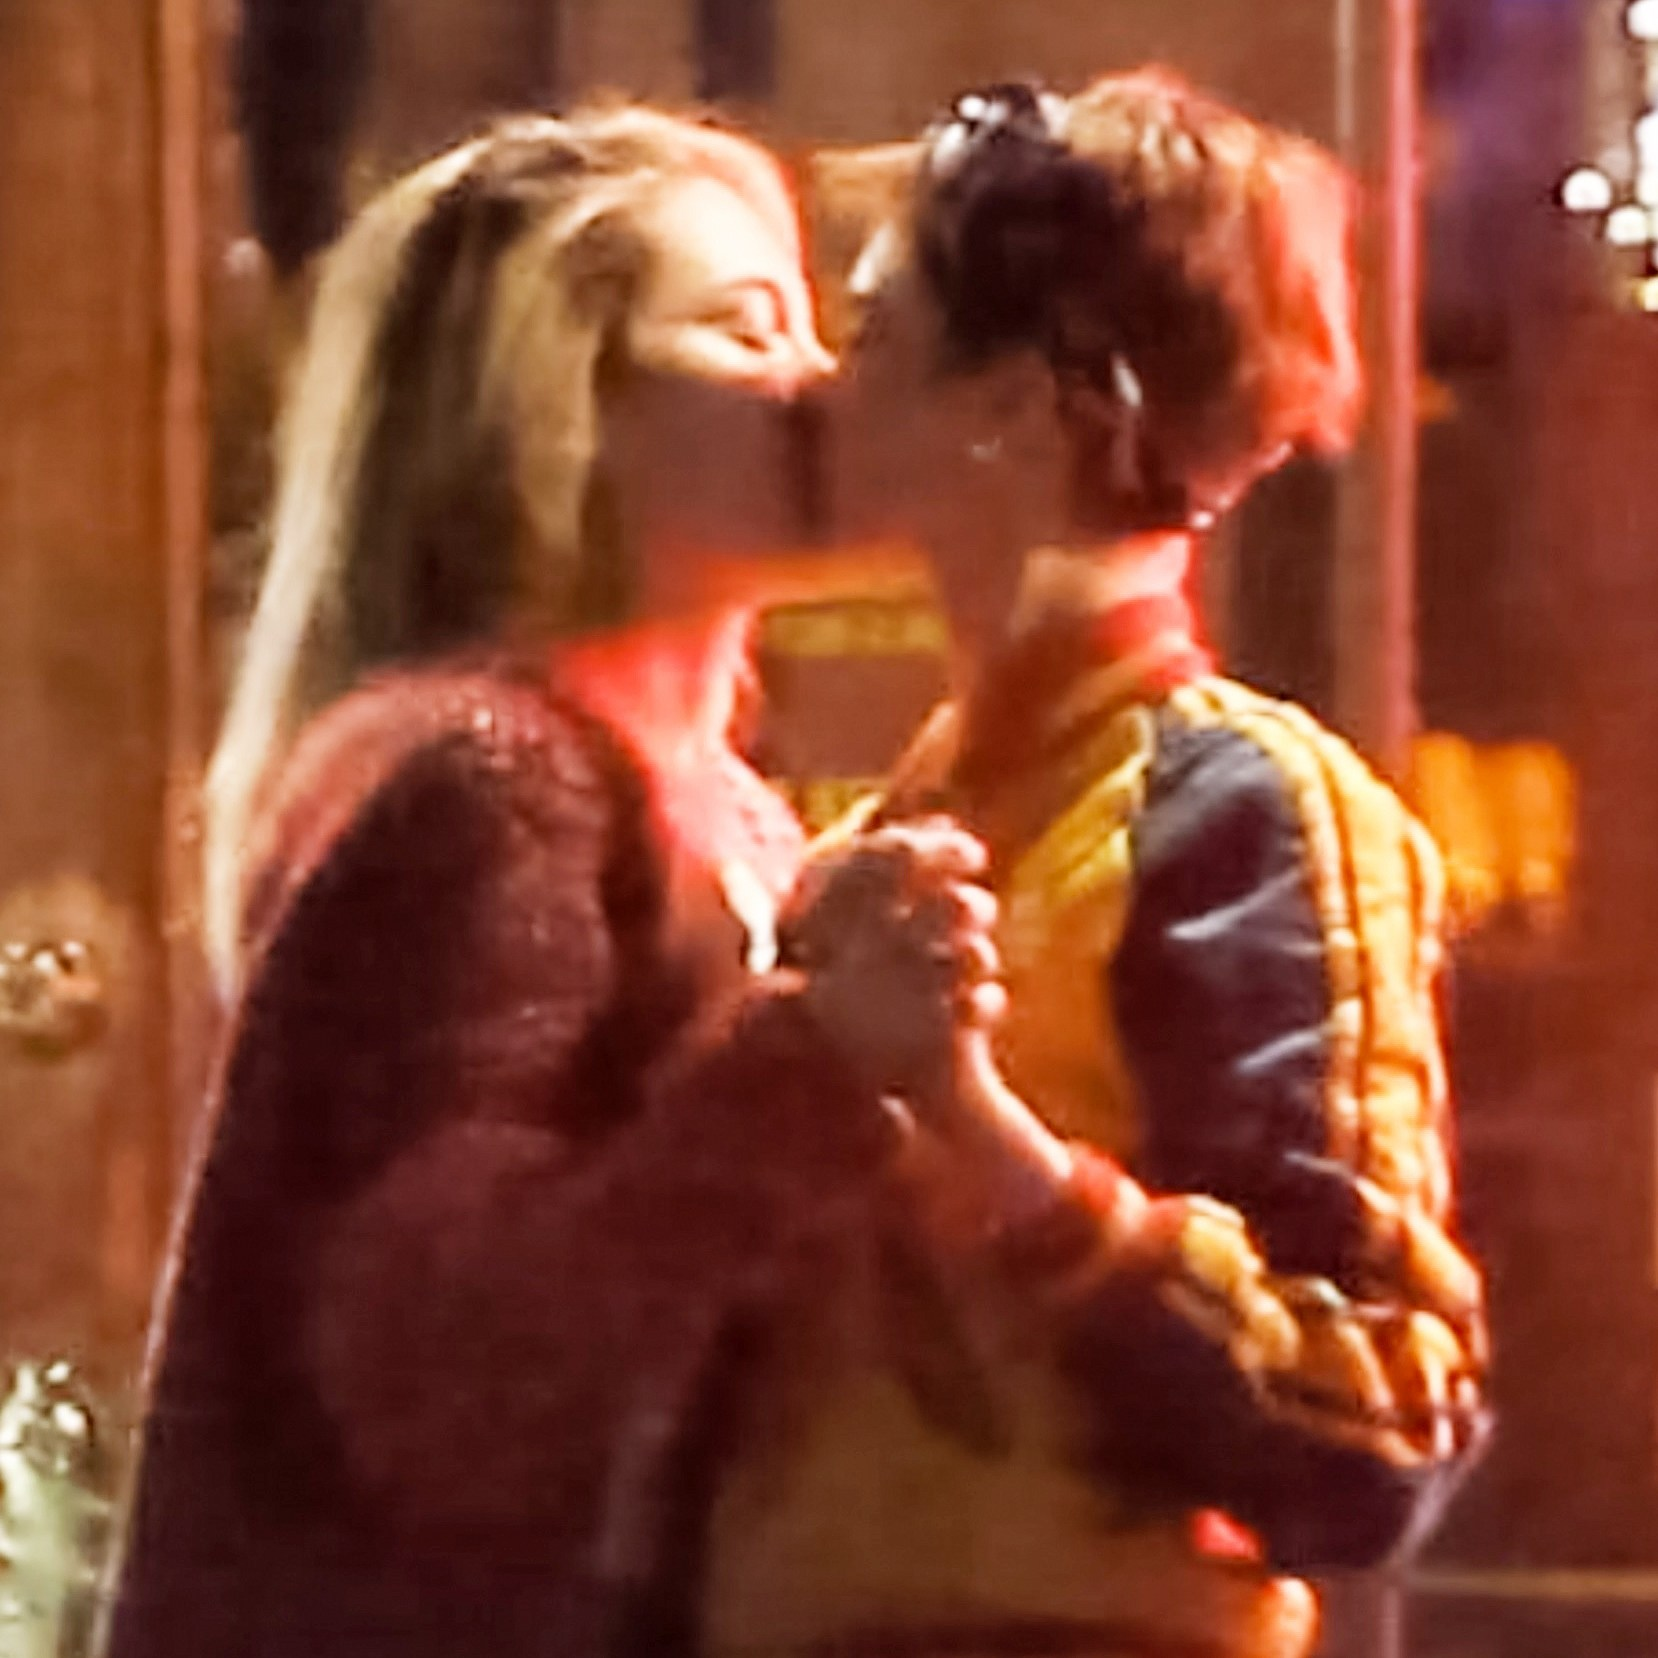 Cara Delevingne Paris Jackson kissing